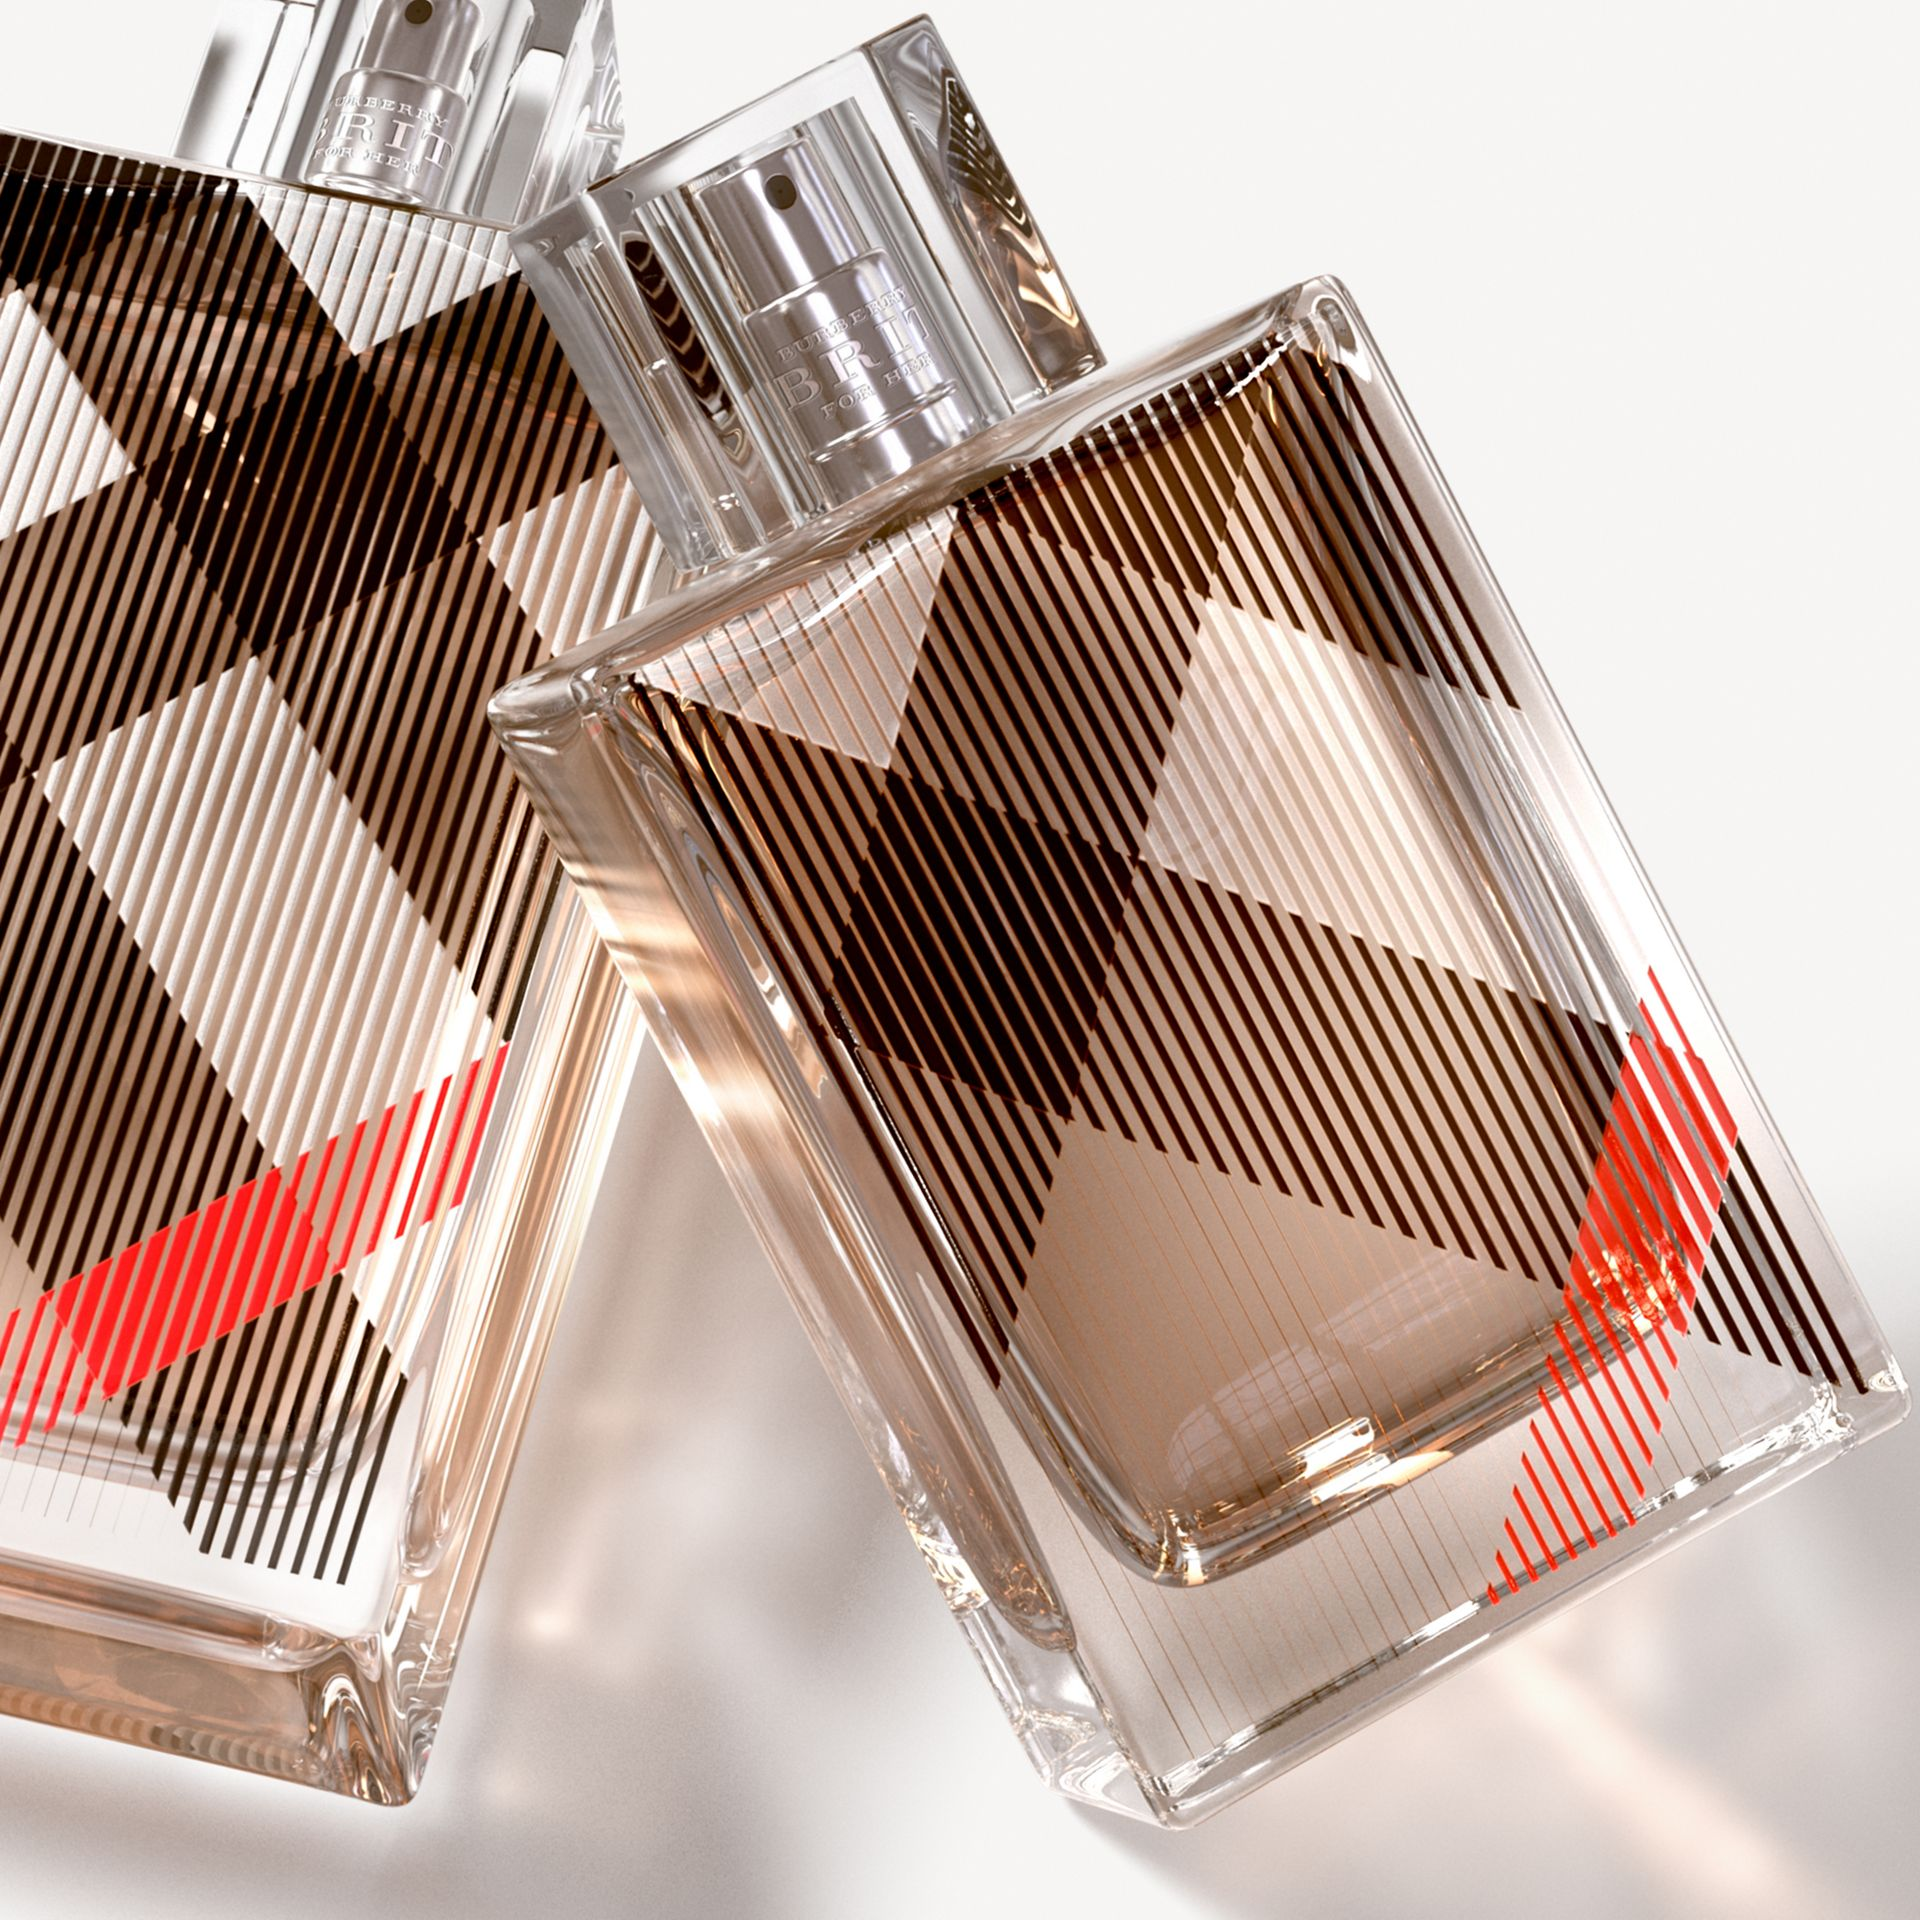 Burberry Brit For Her Eau de Parfum 50ml - gallery image 2